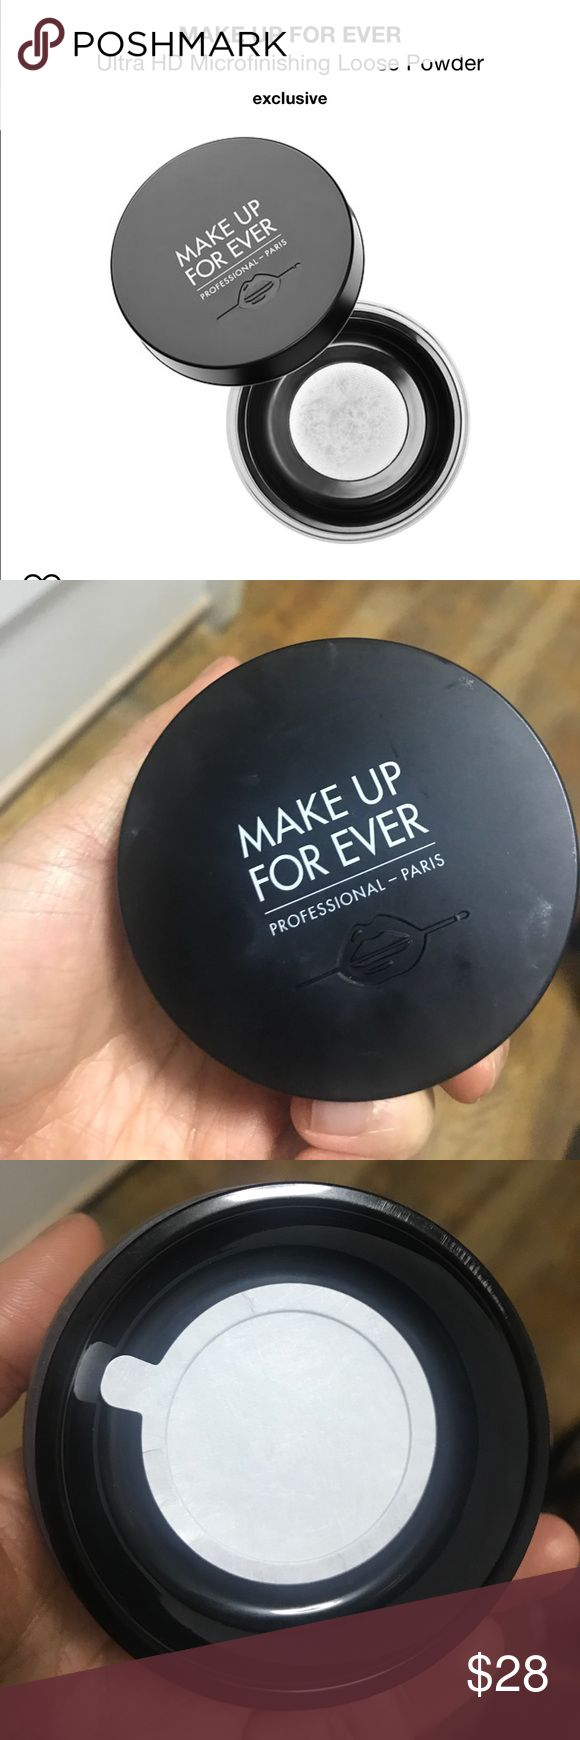 Make up forever HD loose powder brand new The last step in your make up routine, this finishing powder blur the look of your skin's imperfections. Revamped and now more transparent, weightless, and blurring than ever, this is the ultimate finishing powder. The silicon-based formula delivers a naturally matte, light-diffusing effect, while minimizing the appearance of pores and fine lines. Formulated to look invisible, this loose power is perfect for every skintone with a non-drying formula…